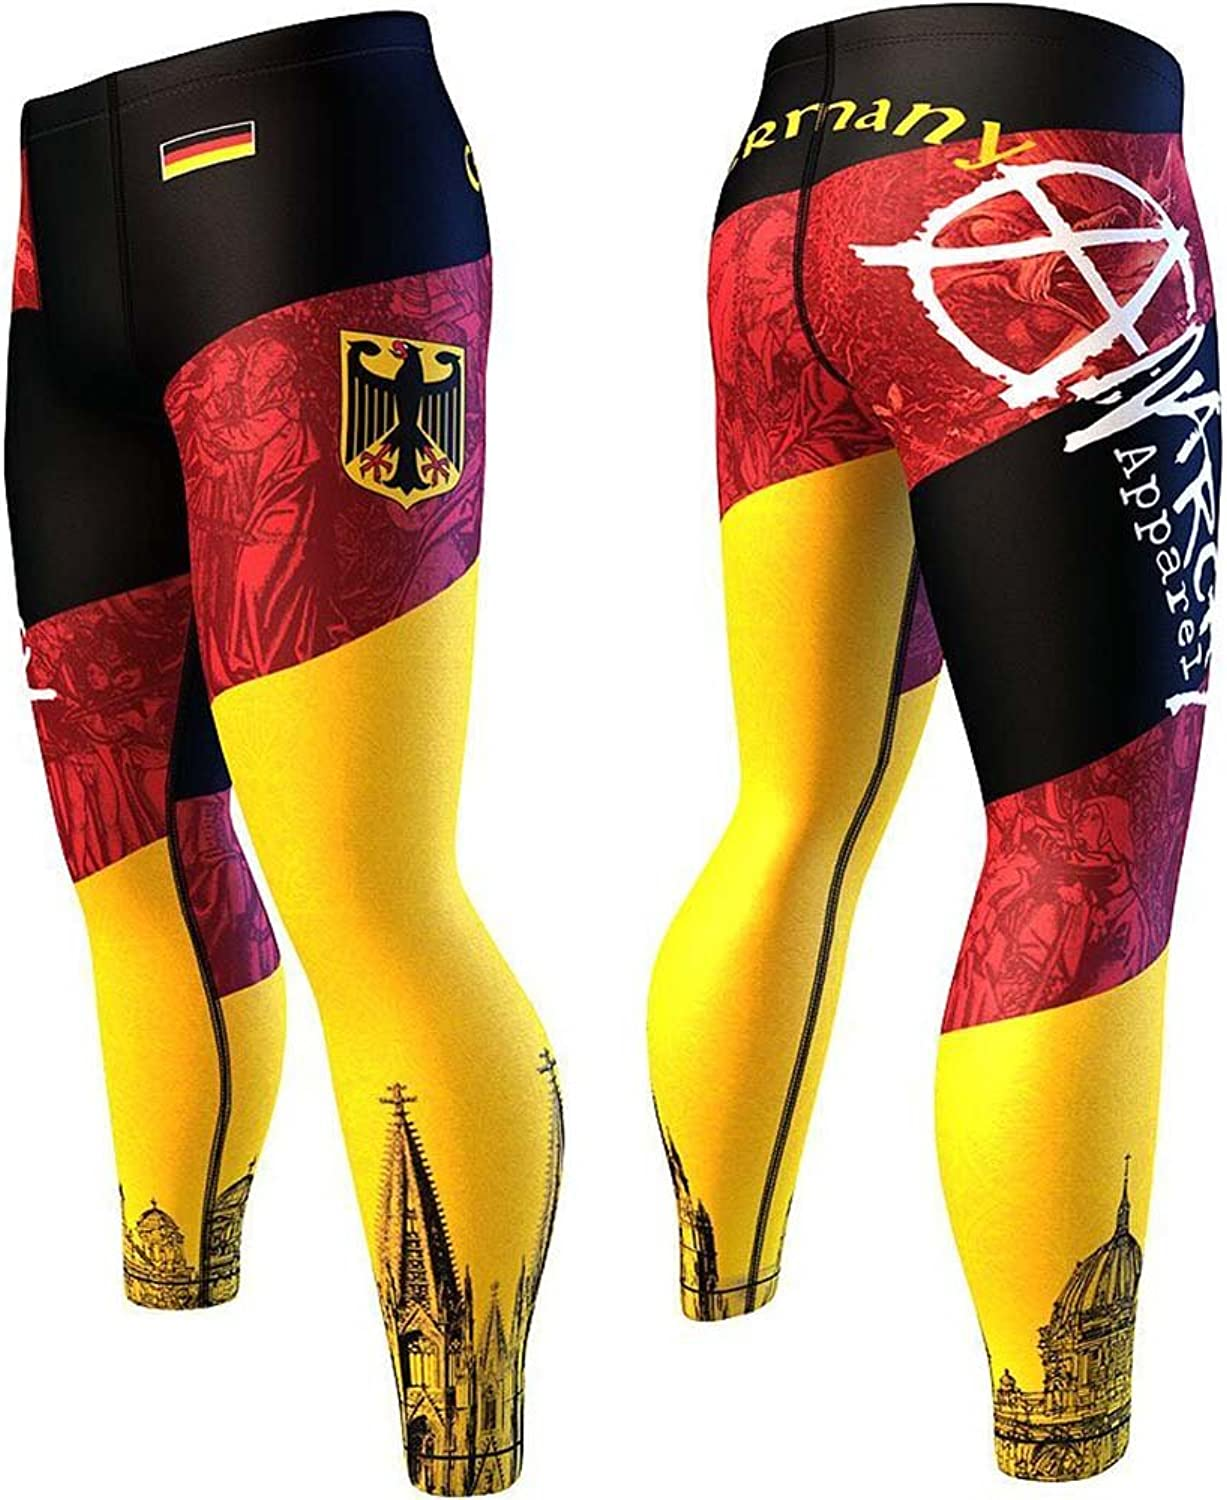 Anarchy Apparel Compression Pants, Germany, MMA Fitness Gym, Aerobic Sport Hosen